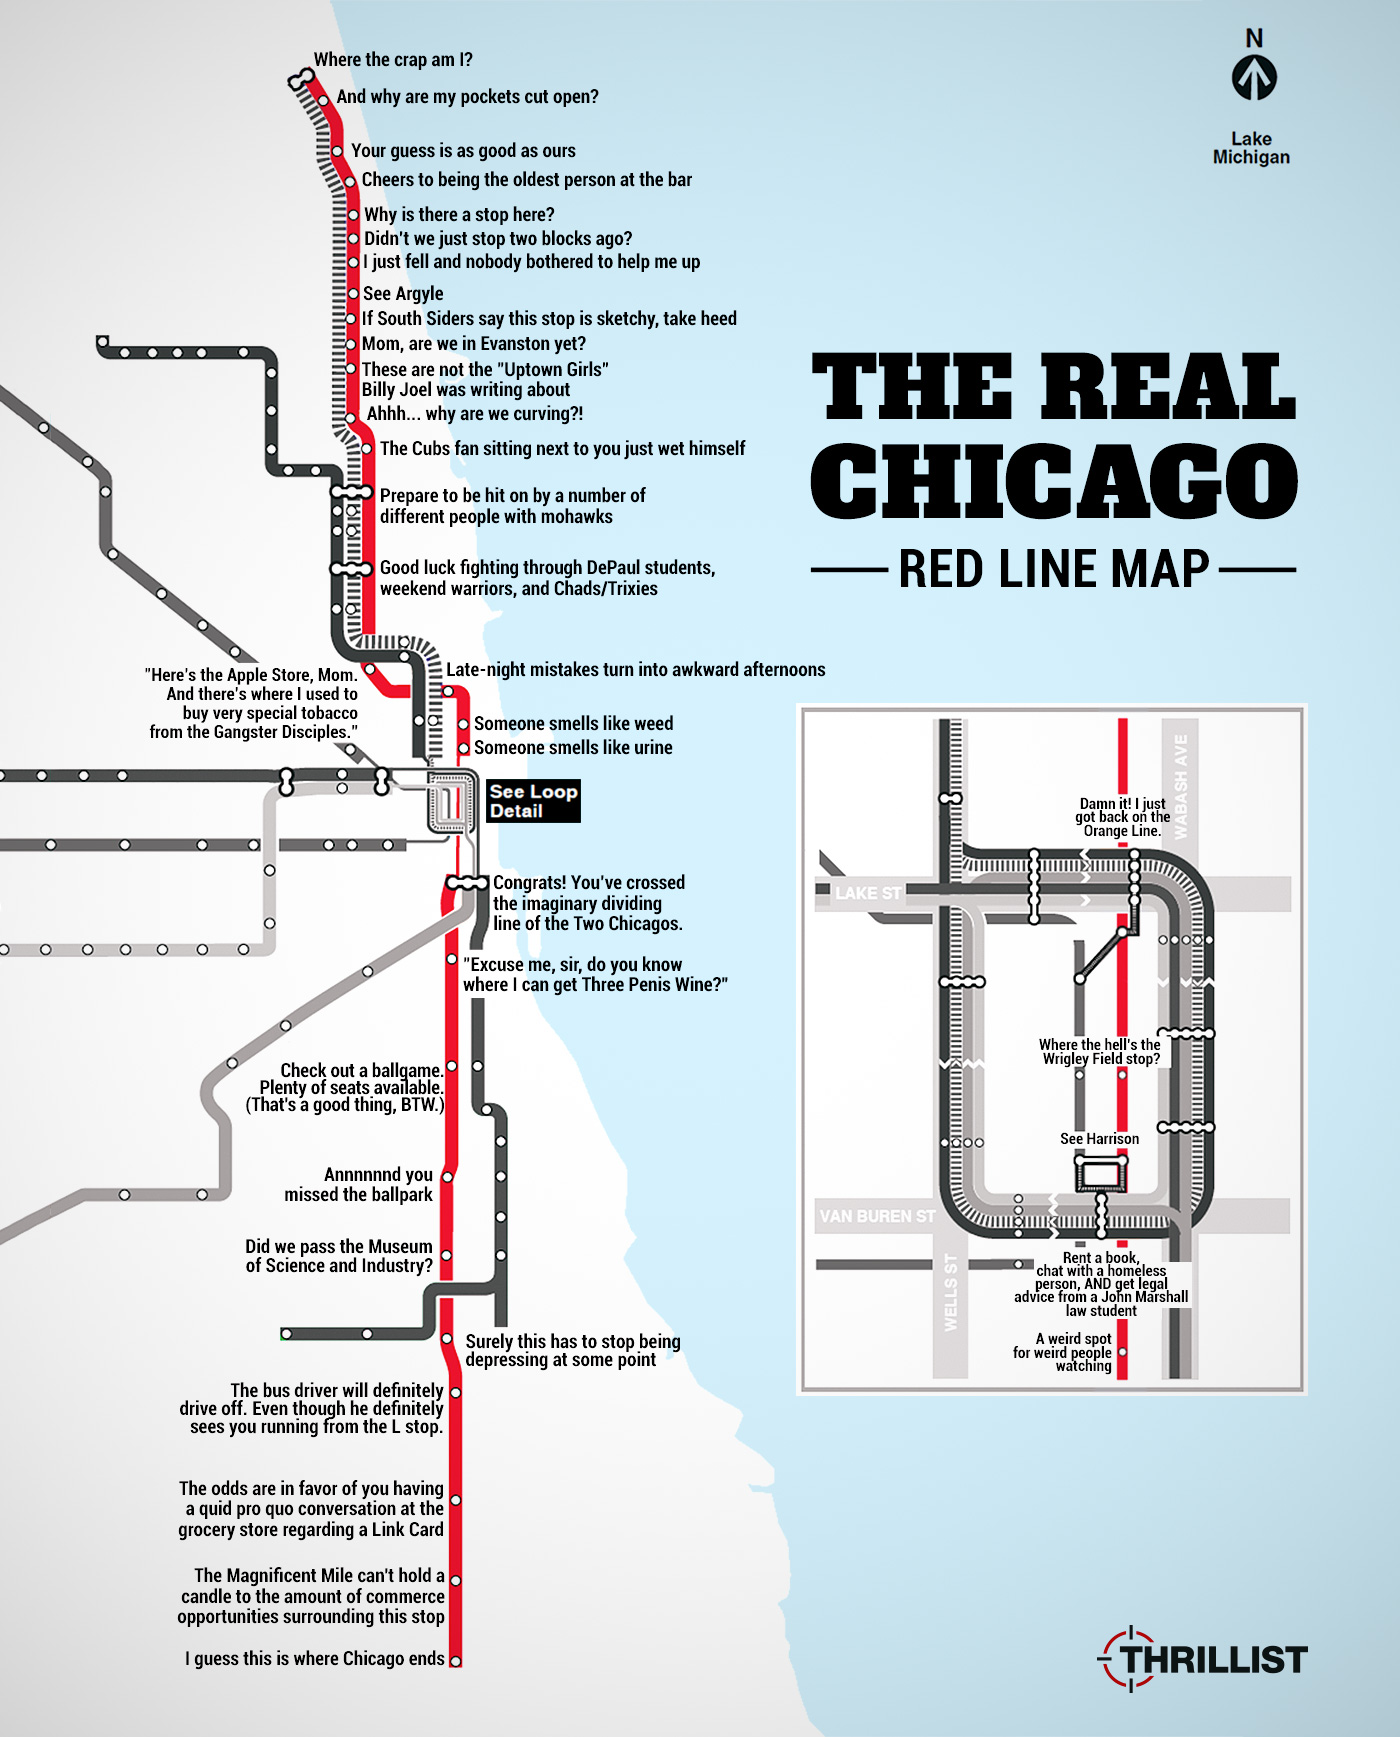 Chicago Red Line Map The Real Red Line Map   Chicago CTA   Thrillist